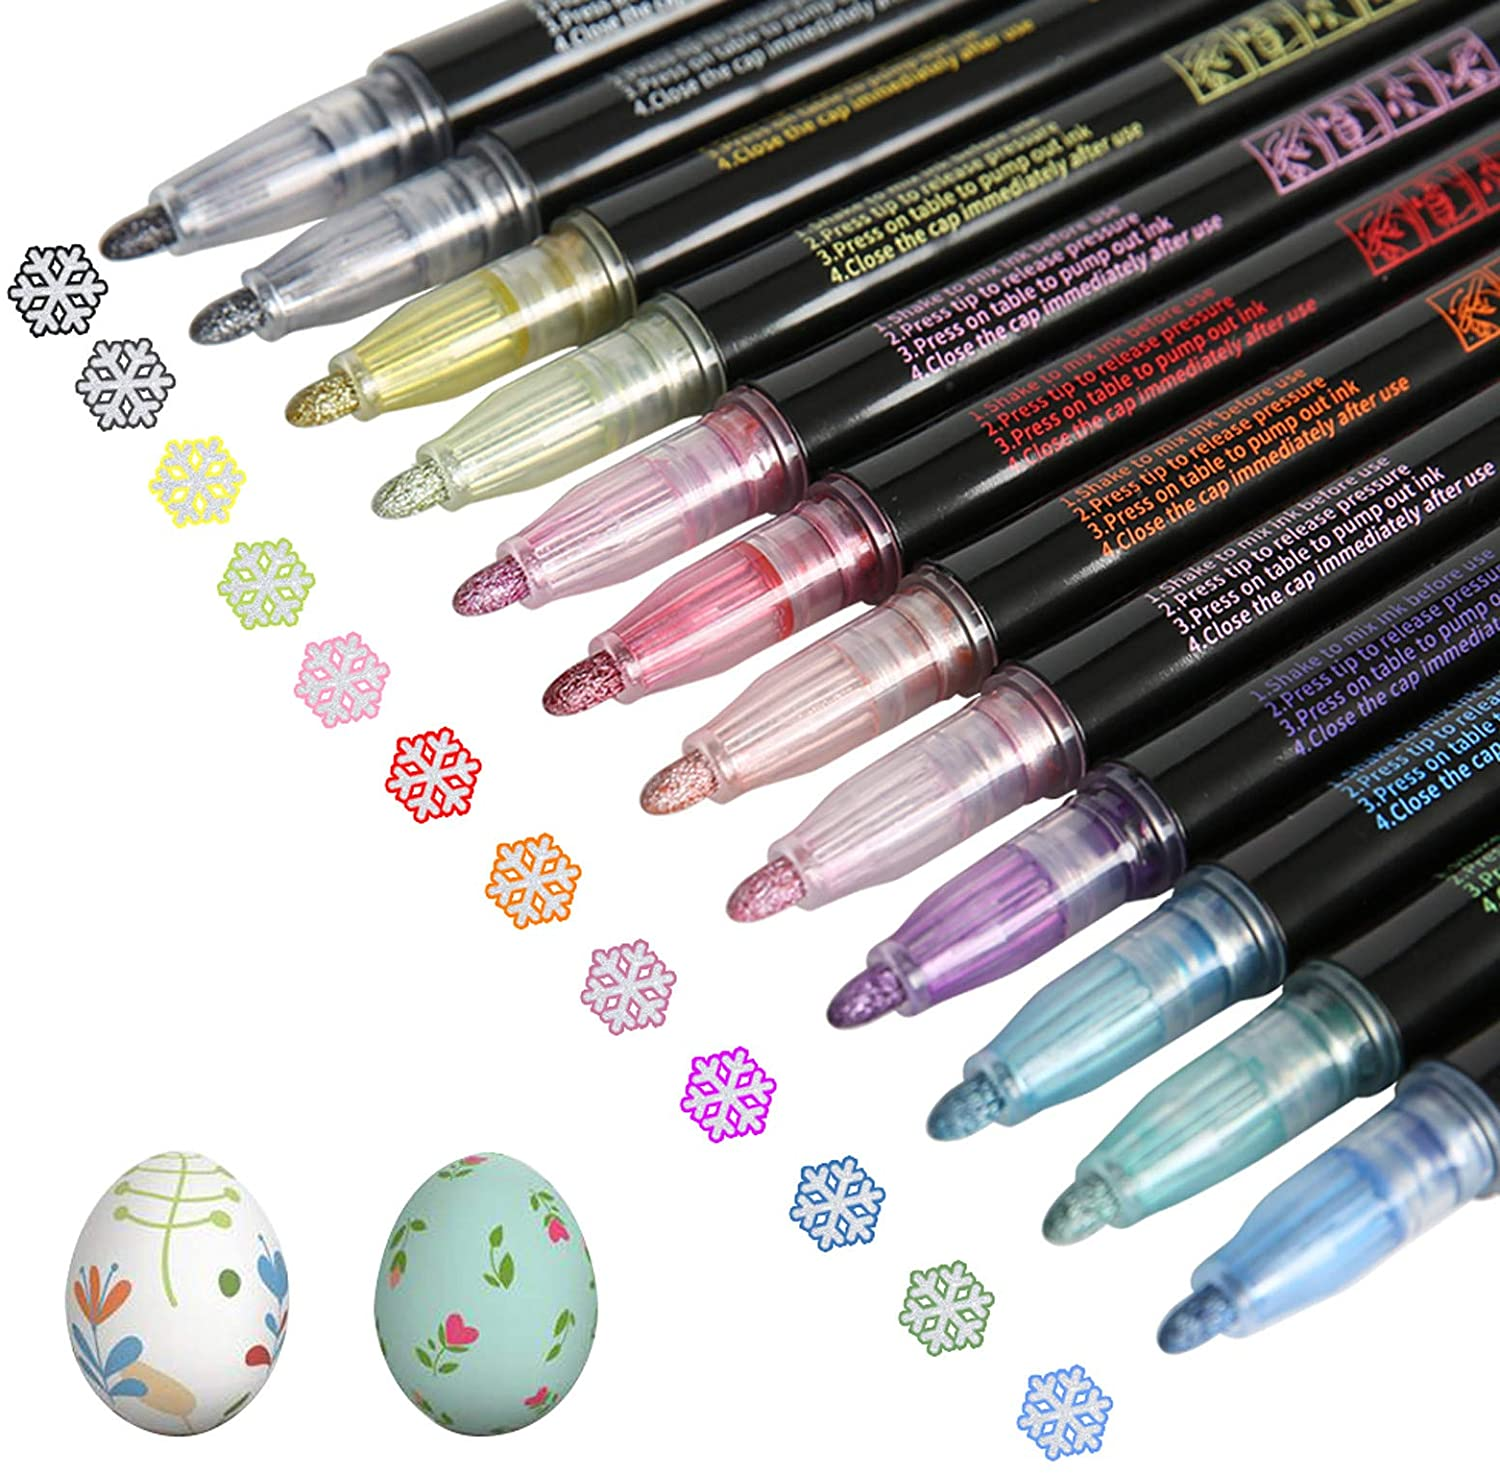 Drawing Double Line Outline Pens Highlighter Markers - Coloring Markers Pens Set Artist Dual Tip Markers Highlighter Watercolor Markers Pens for Adult Children Acrylic Paint Pens (12ct)